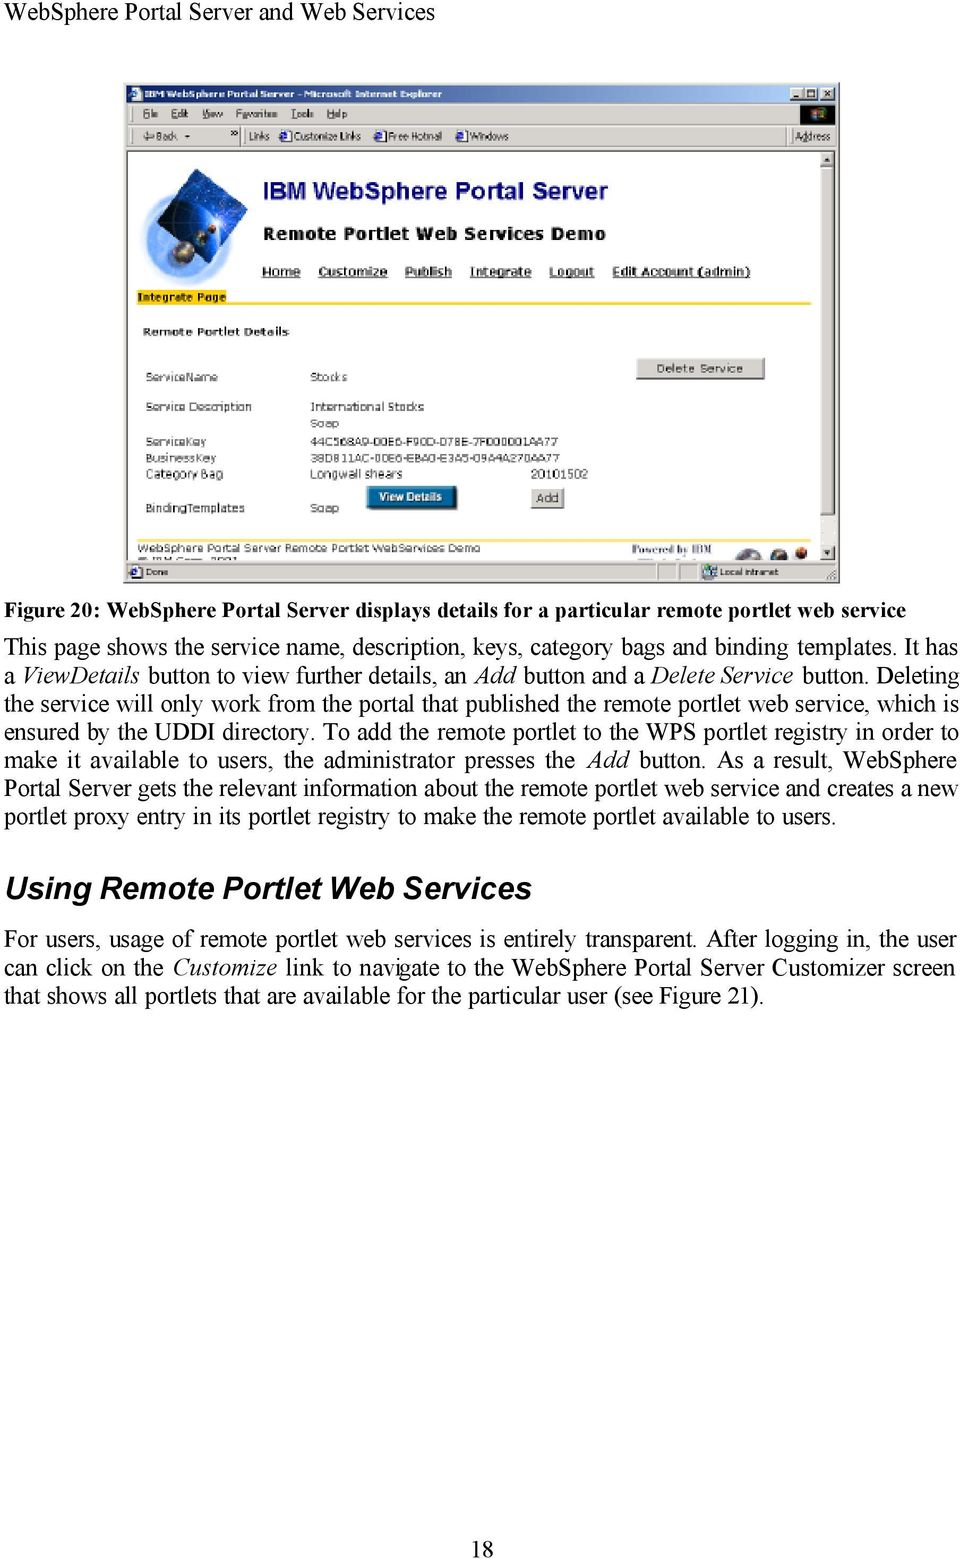 Deleting the service will only work from the portal that published the remote portlet web service, which is ensured by the UDDI directory.